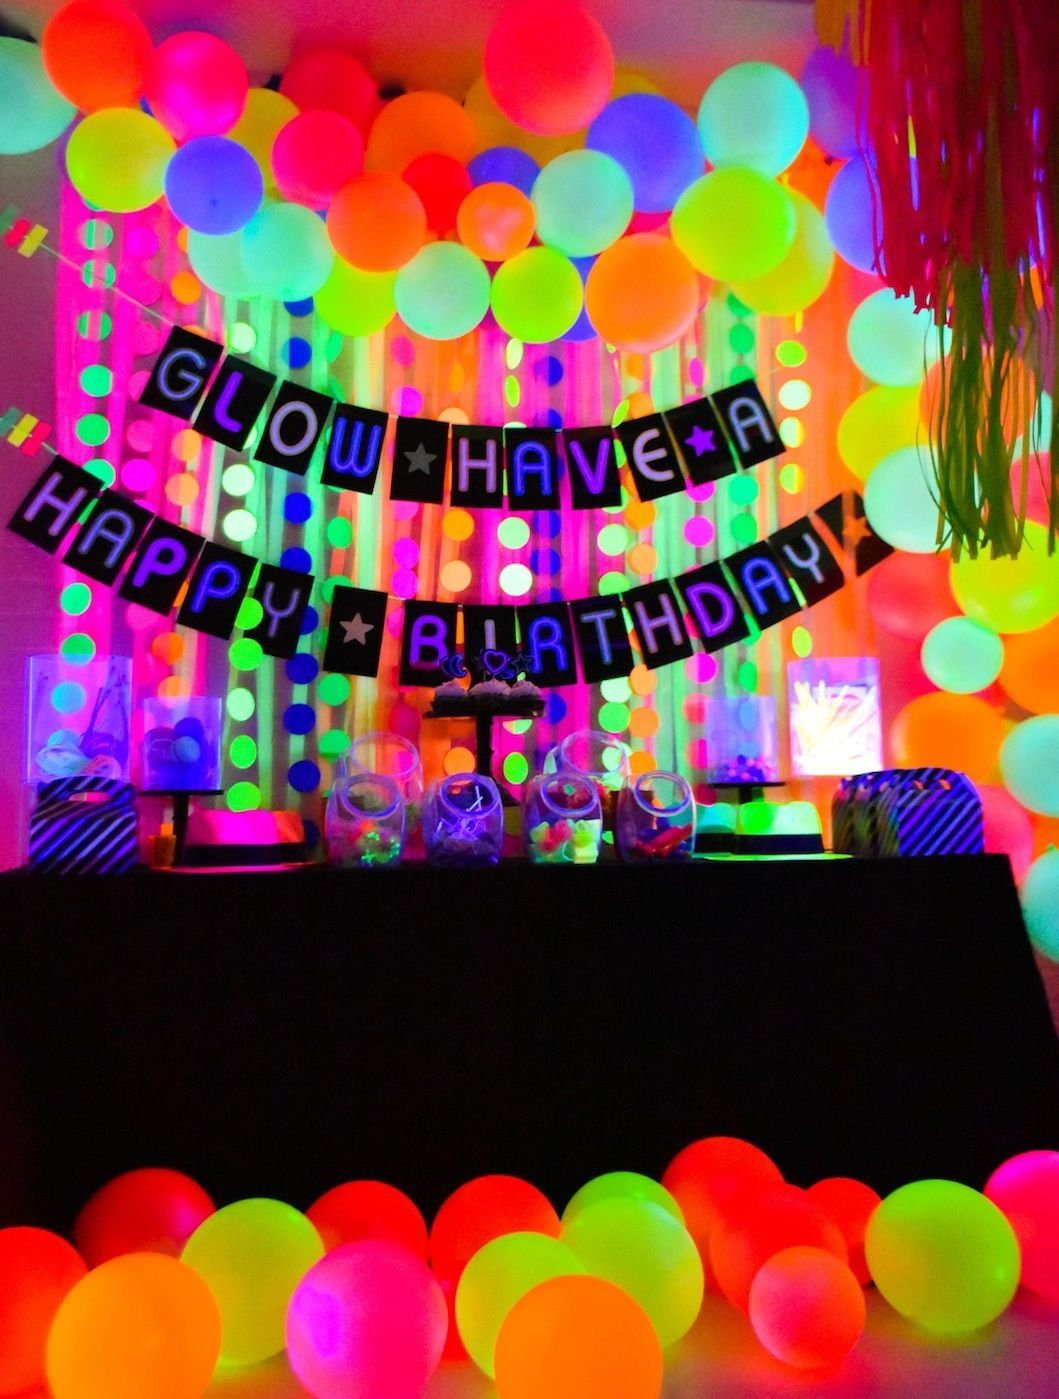 Glow In The Dark Party Ideas In 2020 Neon Party Neon Birthday